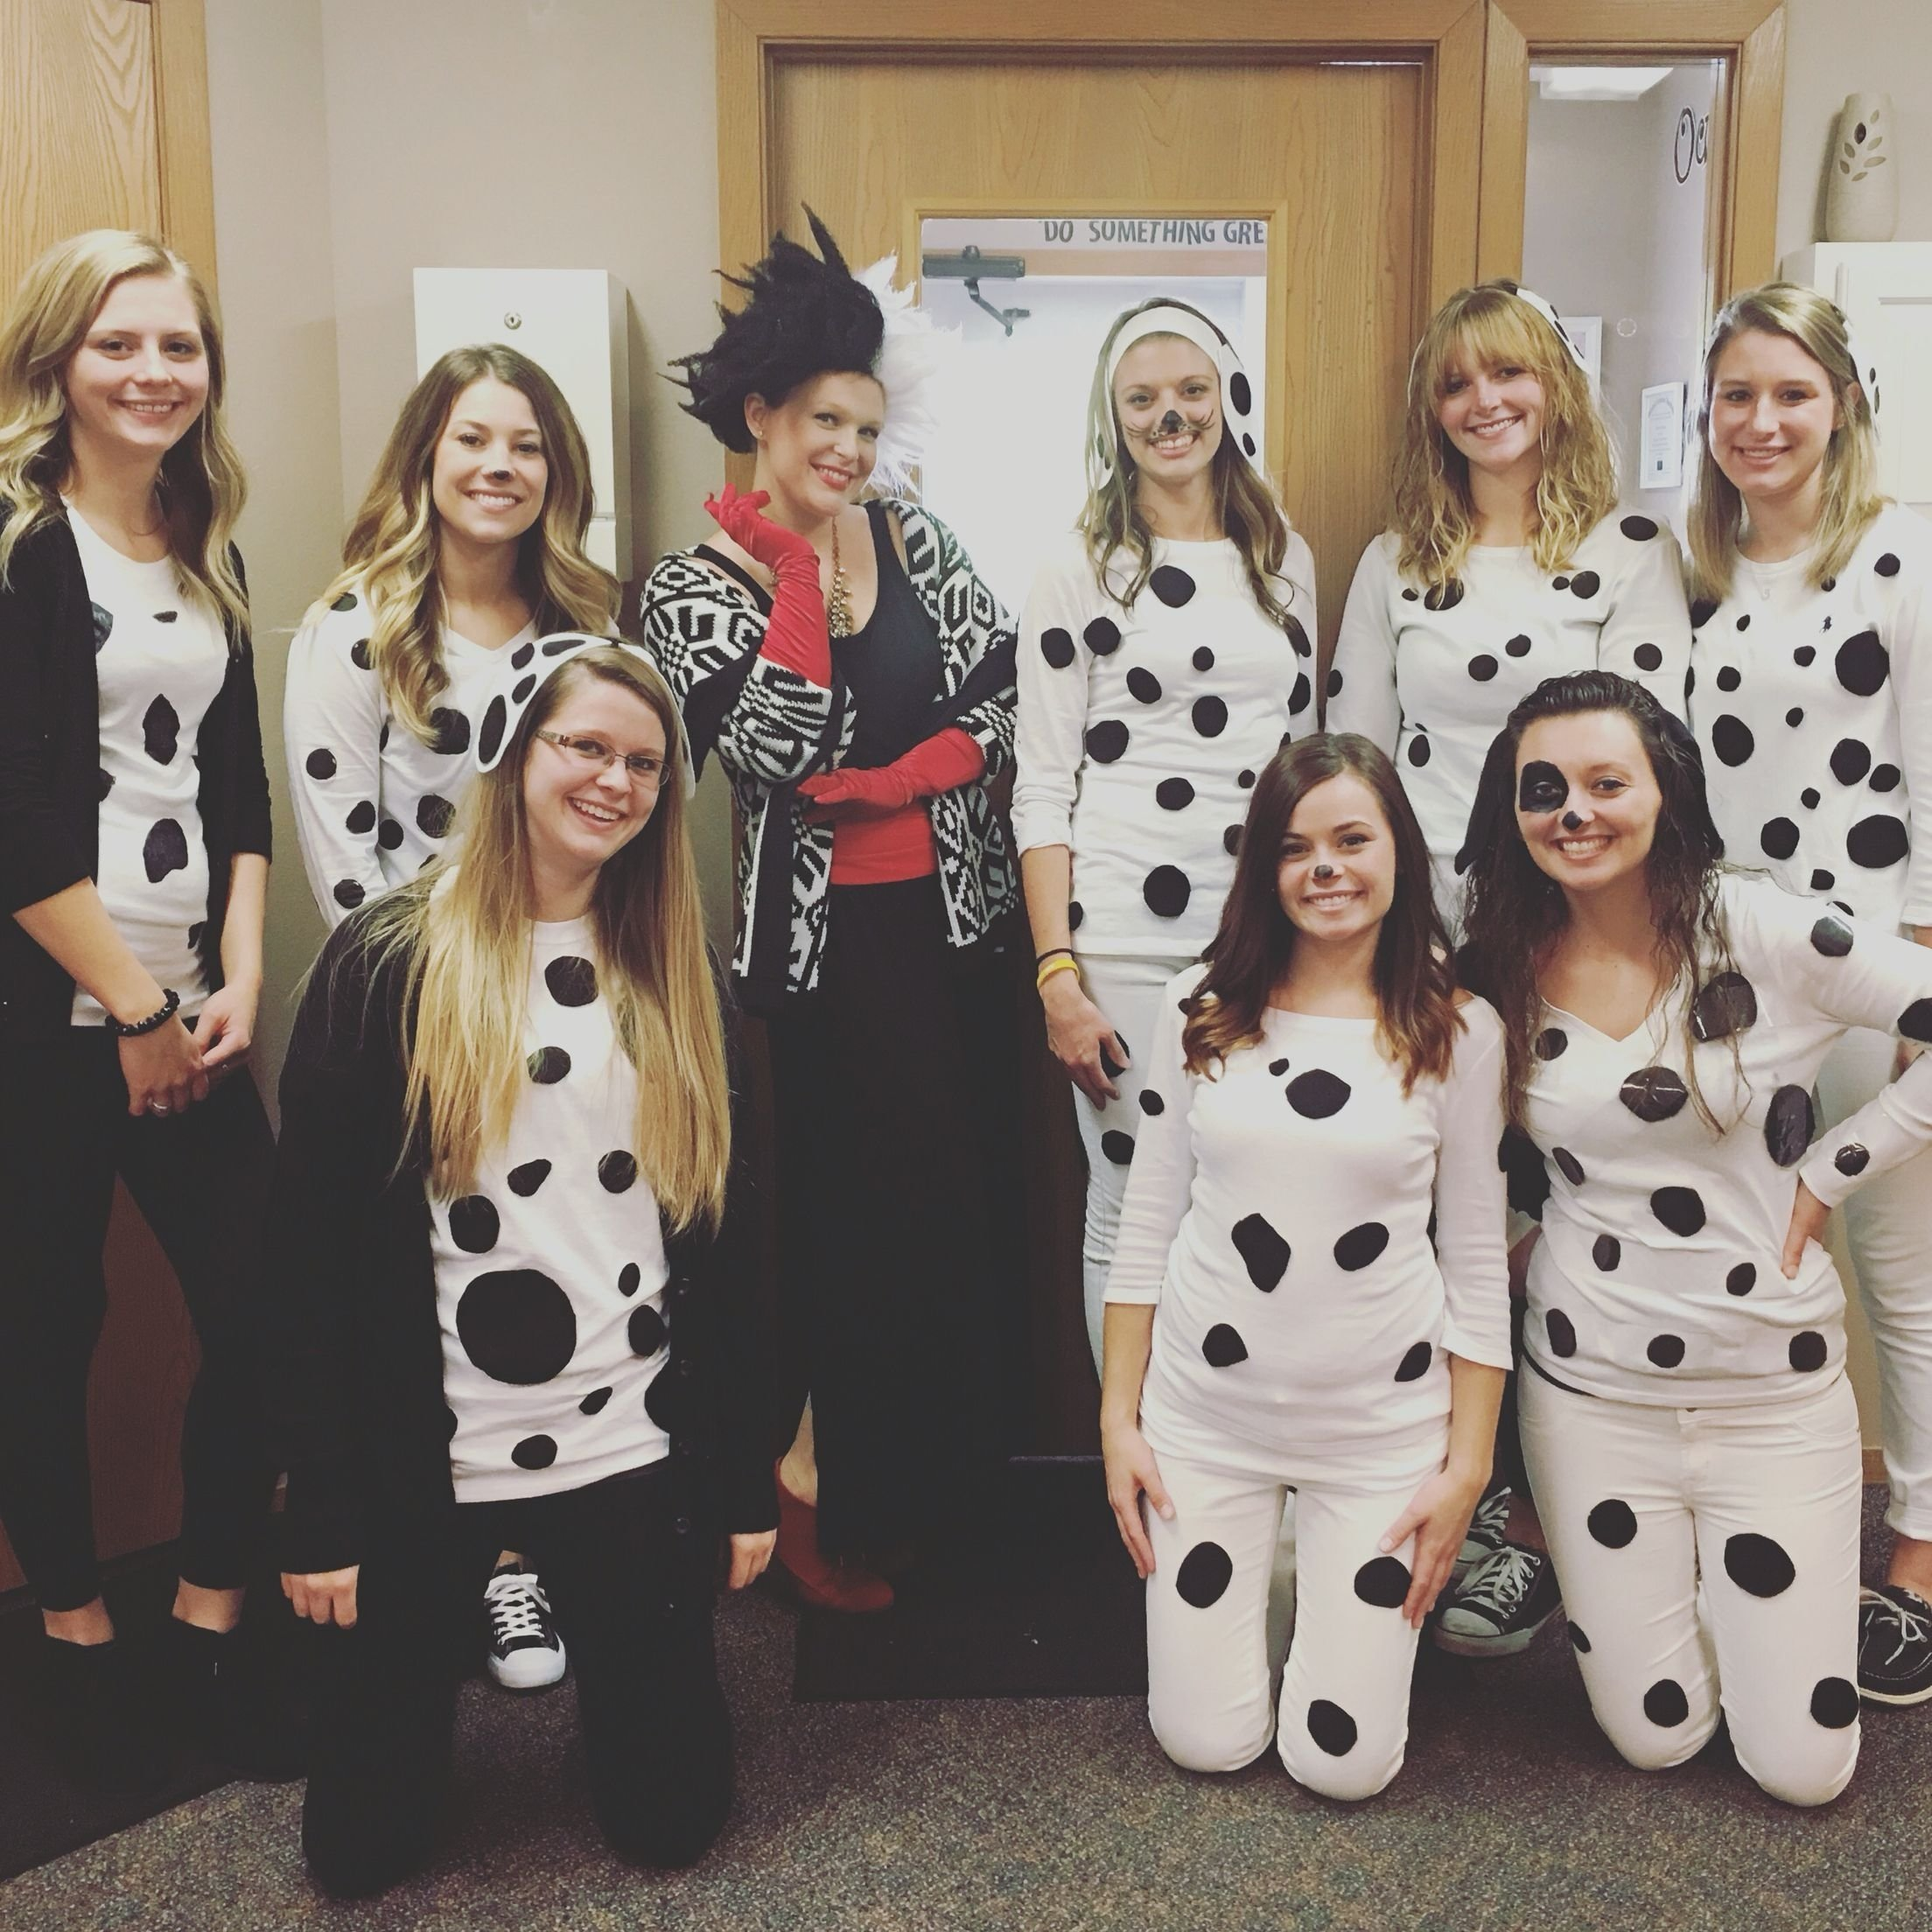 10 Best Group Halloween Costume Ideas For Work 101 dalmation group costume holidays events pinterest 2020